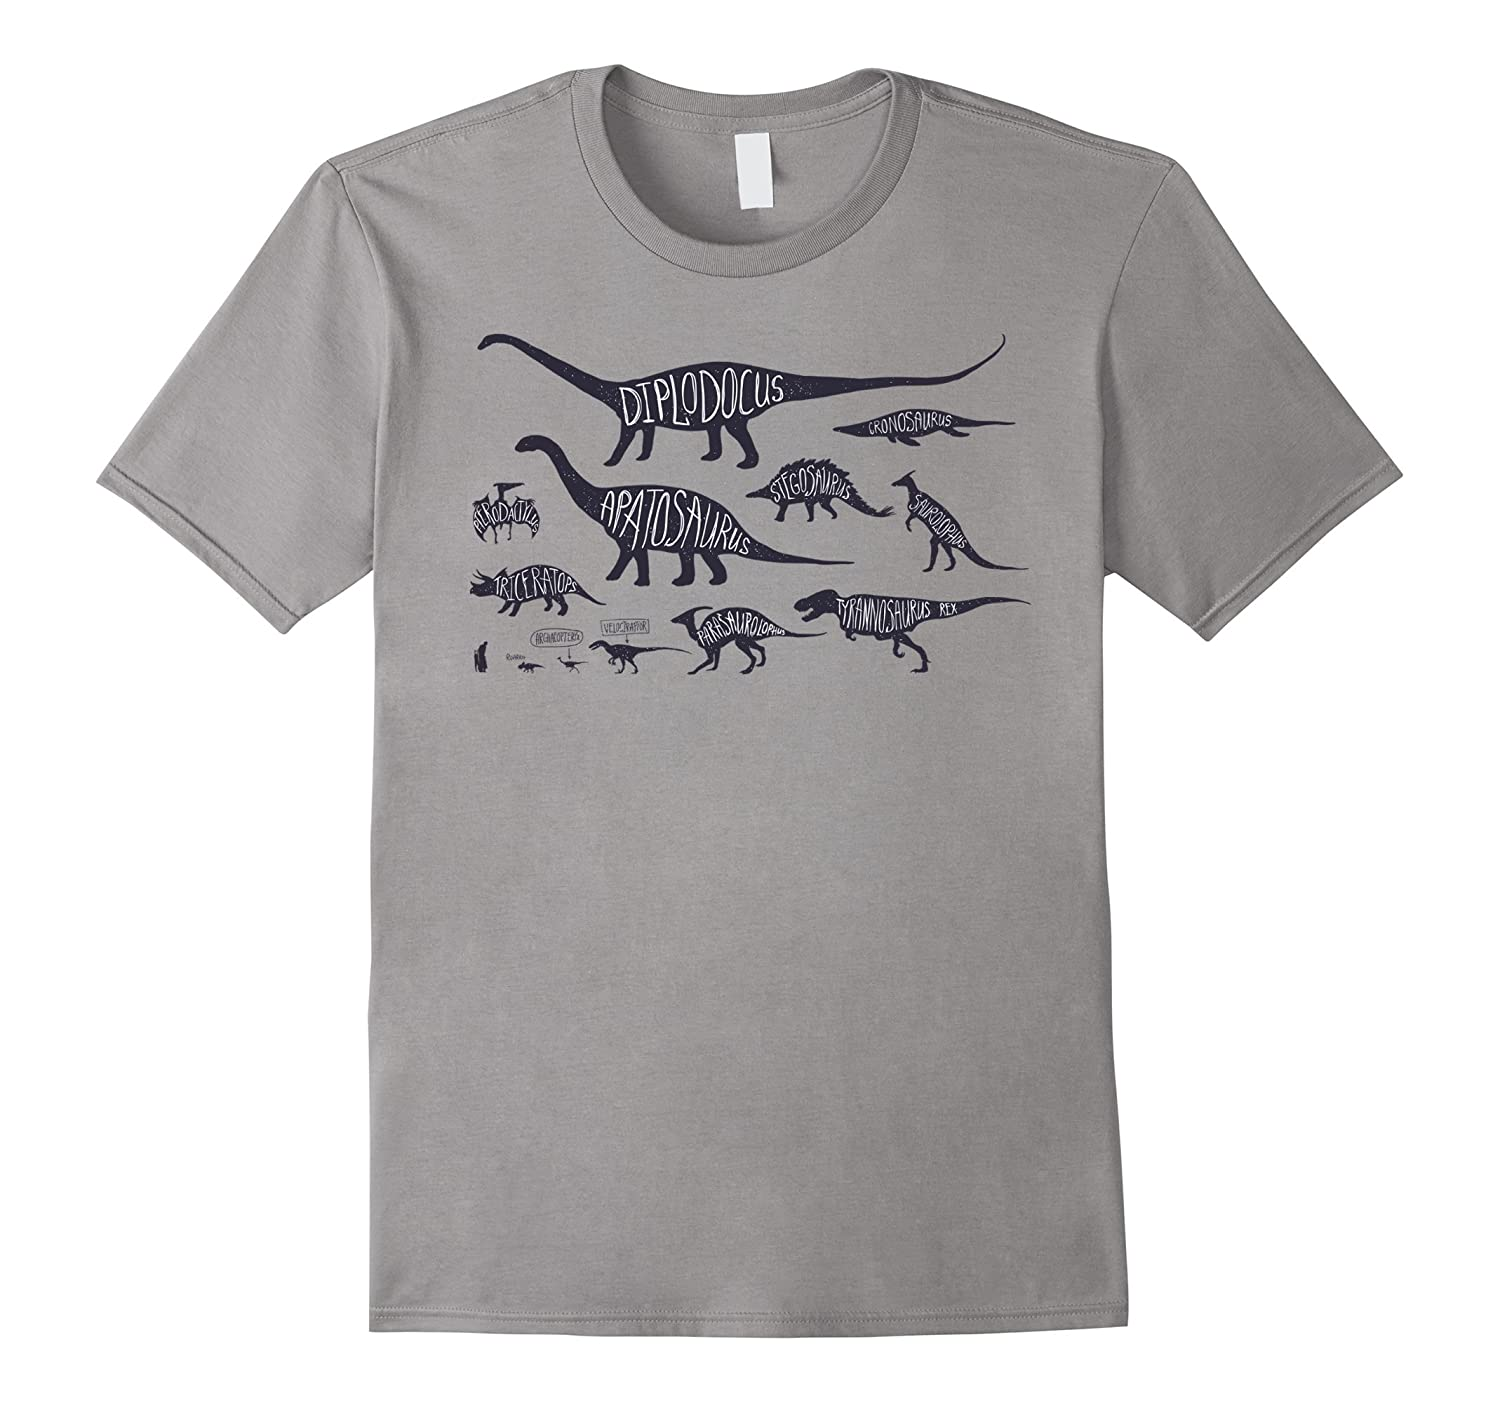 92d8d970f35 Mens Worlds Best Step Dad T-Shirt Fathers Day 2017 Gift-TH. Dinosaur T  Shirt with Variety of Dinos T Rex Velociraptor-TH